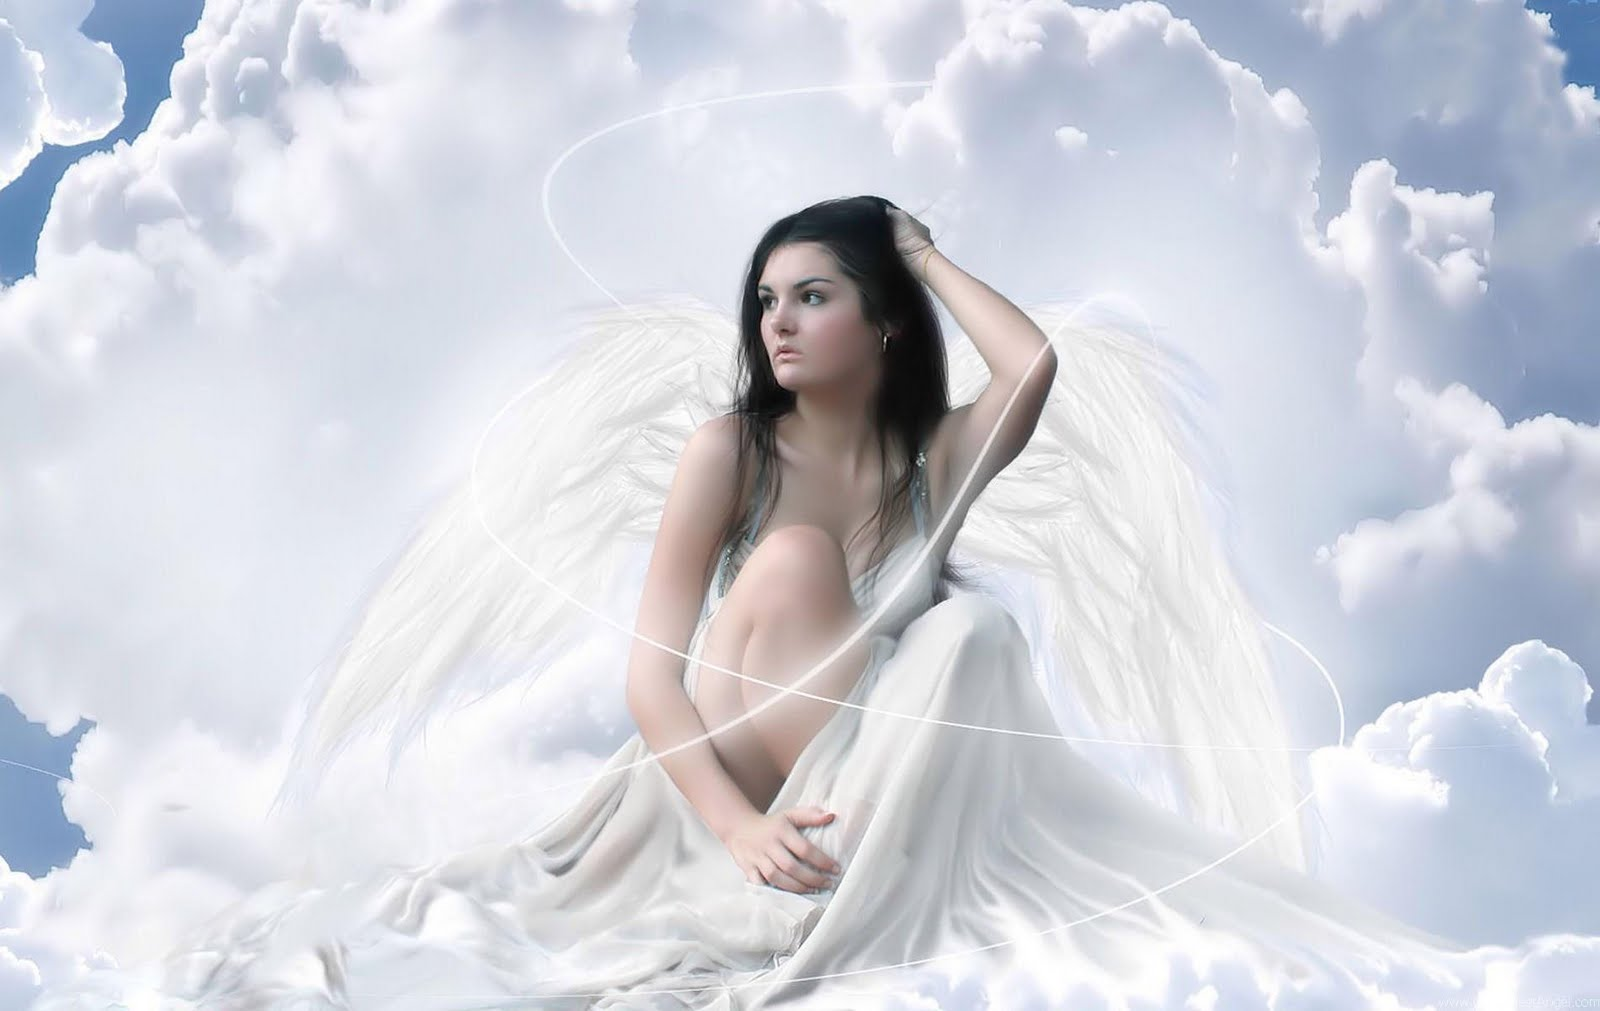 beautiful fantasy girl wallpapers-02 ~ only sweet angel